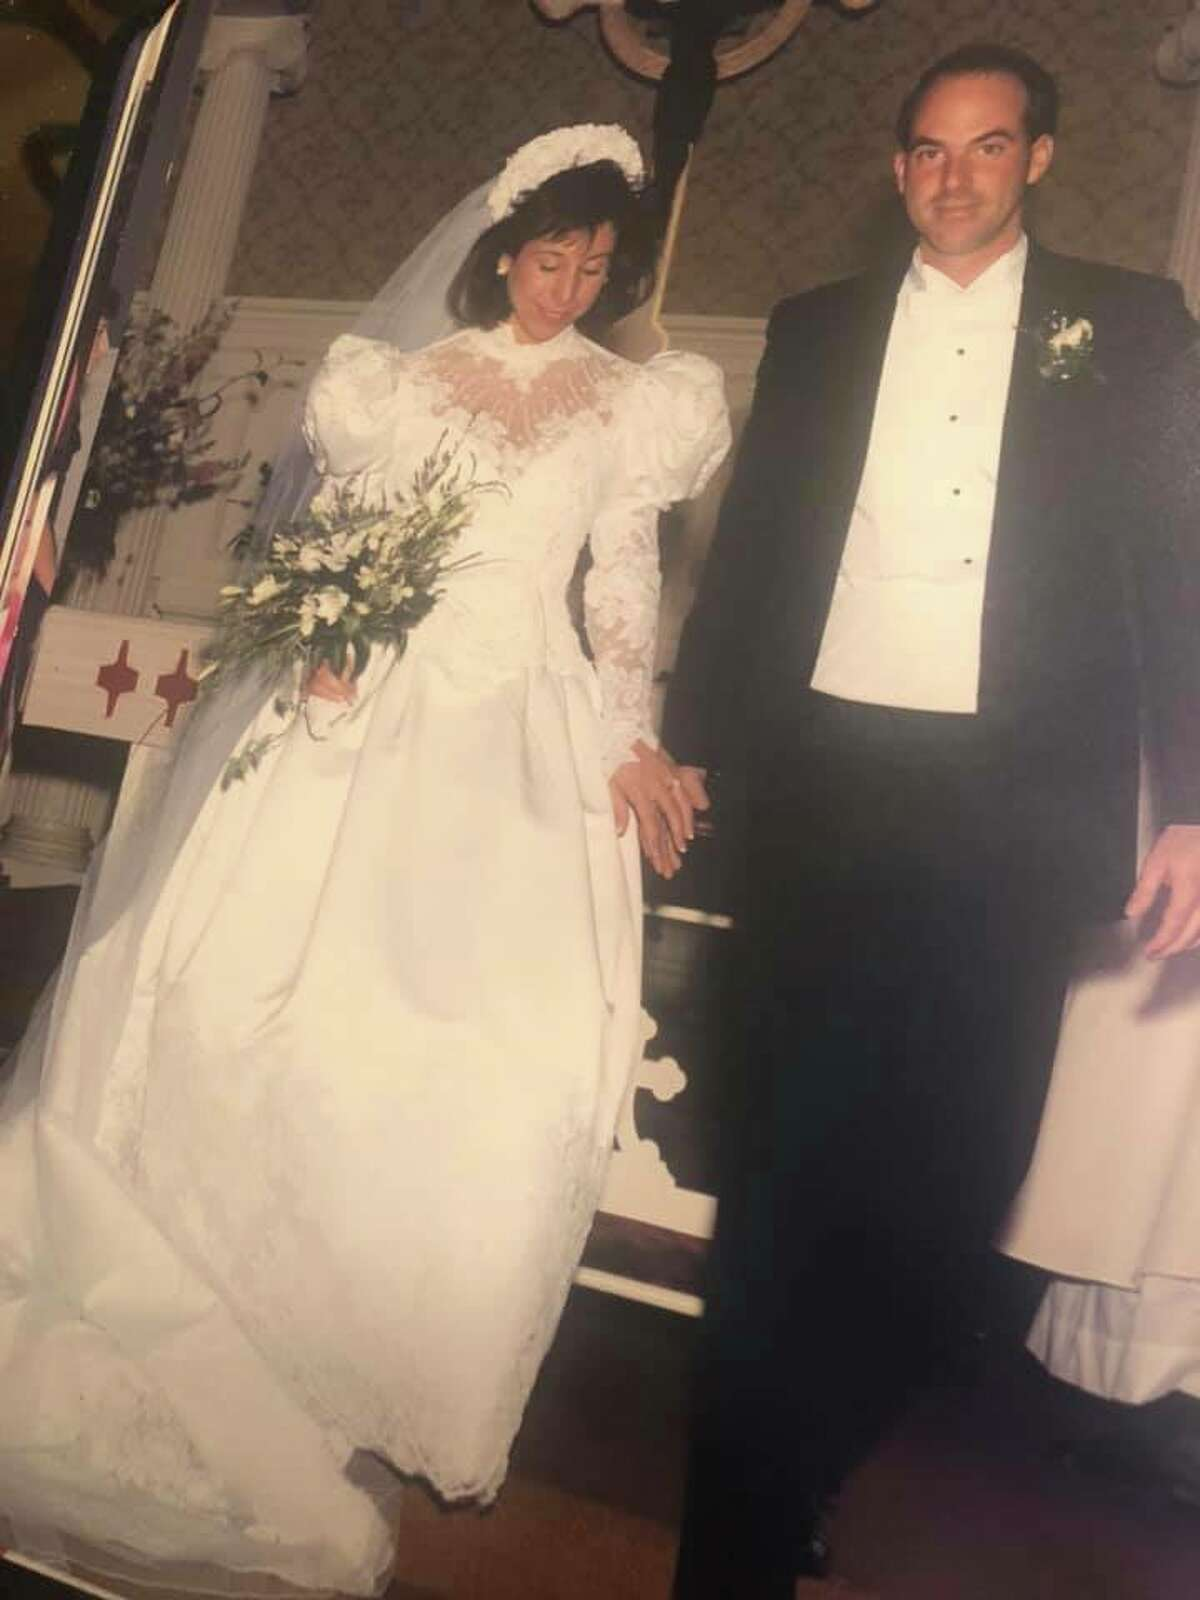 2. I wore my mother's wedding dress for my special day. I still remember trying it on for the first time when I was little and knowing from that moment I wanted to wear it when I got married. Hopefully it brings Tyson and me the same luck it brought my parents (they're celebrating their 30th anniversary this month).